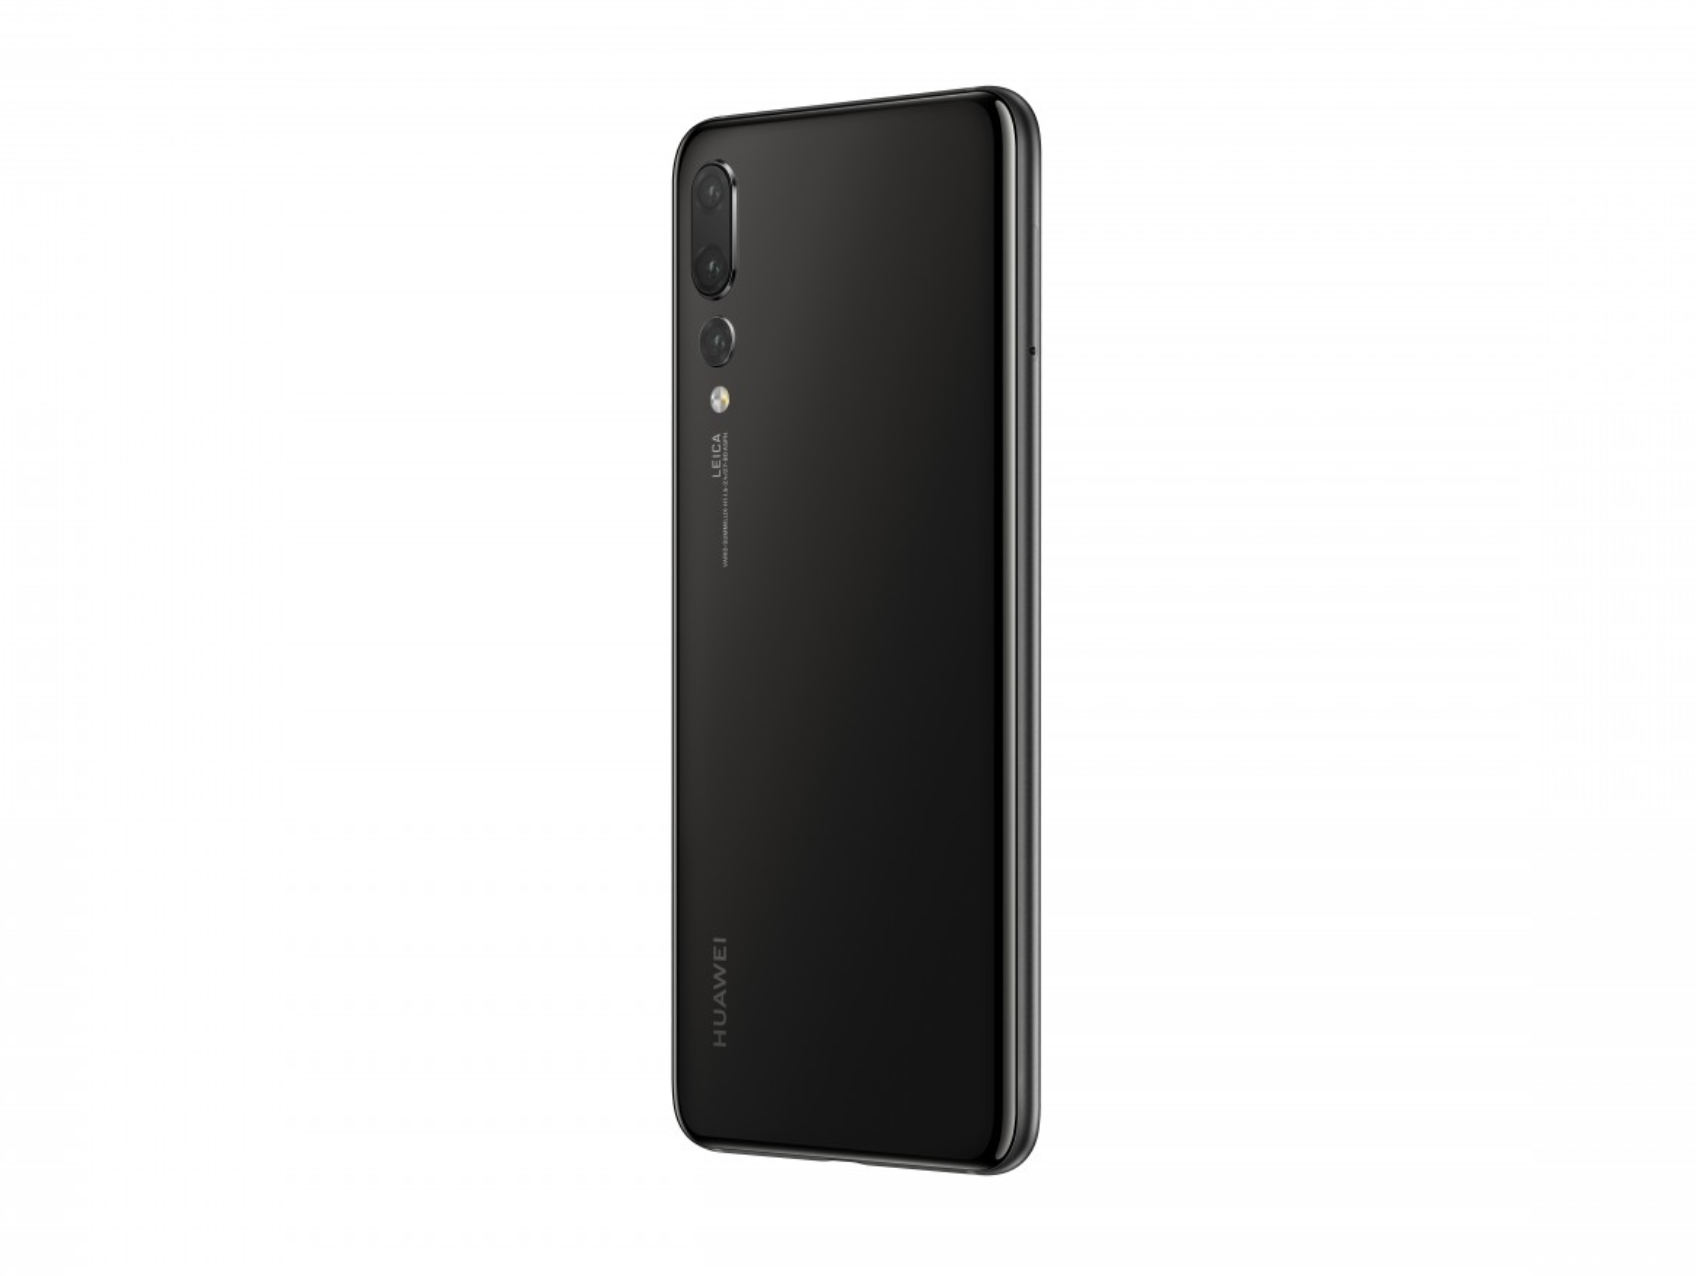 Screen Shot 2018 03 27 at 10.31.32 PM - Huawei unveils the Huawei P20 Pro rocking a notch and a 40MP Triple camera setup along with the P20